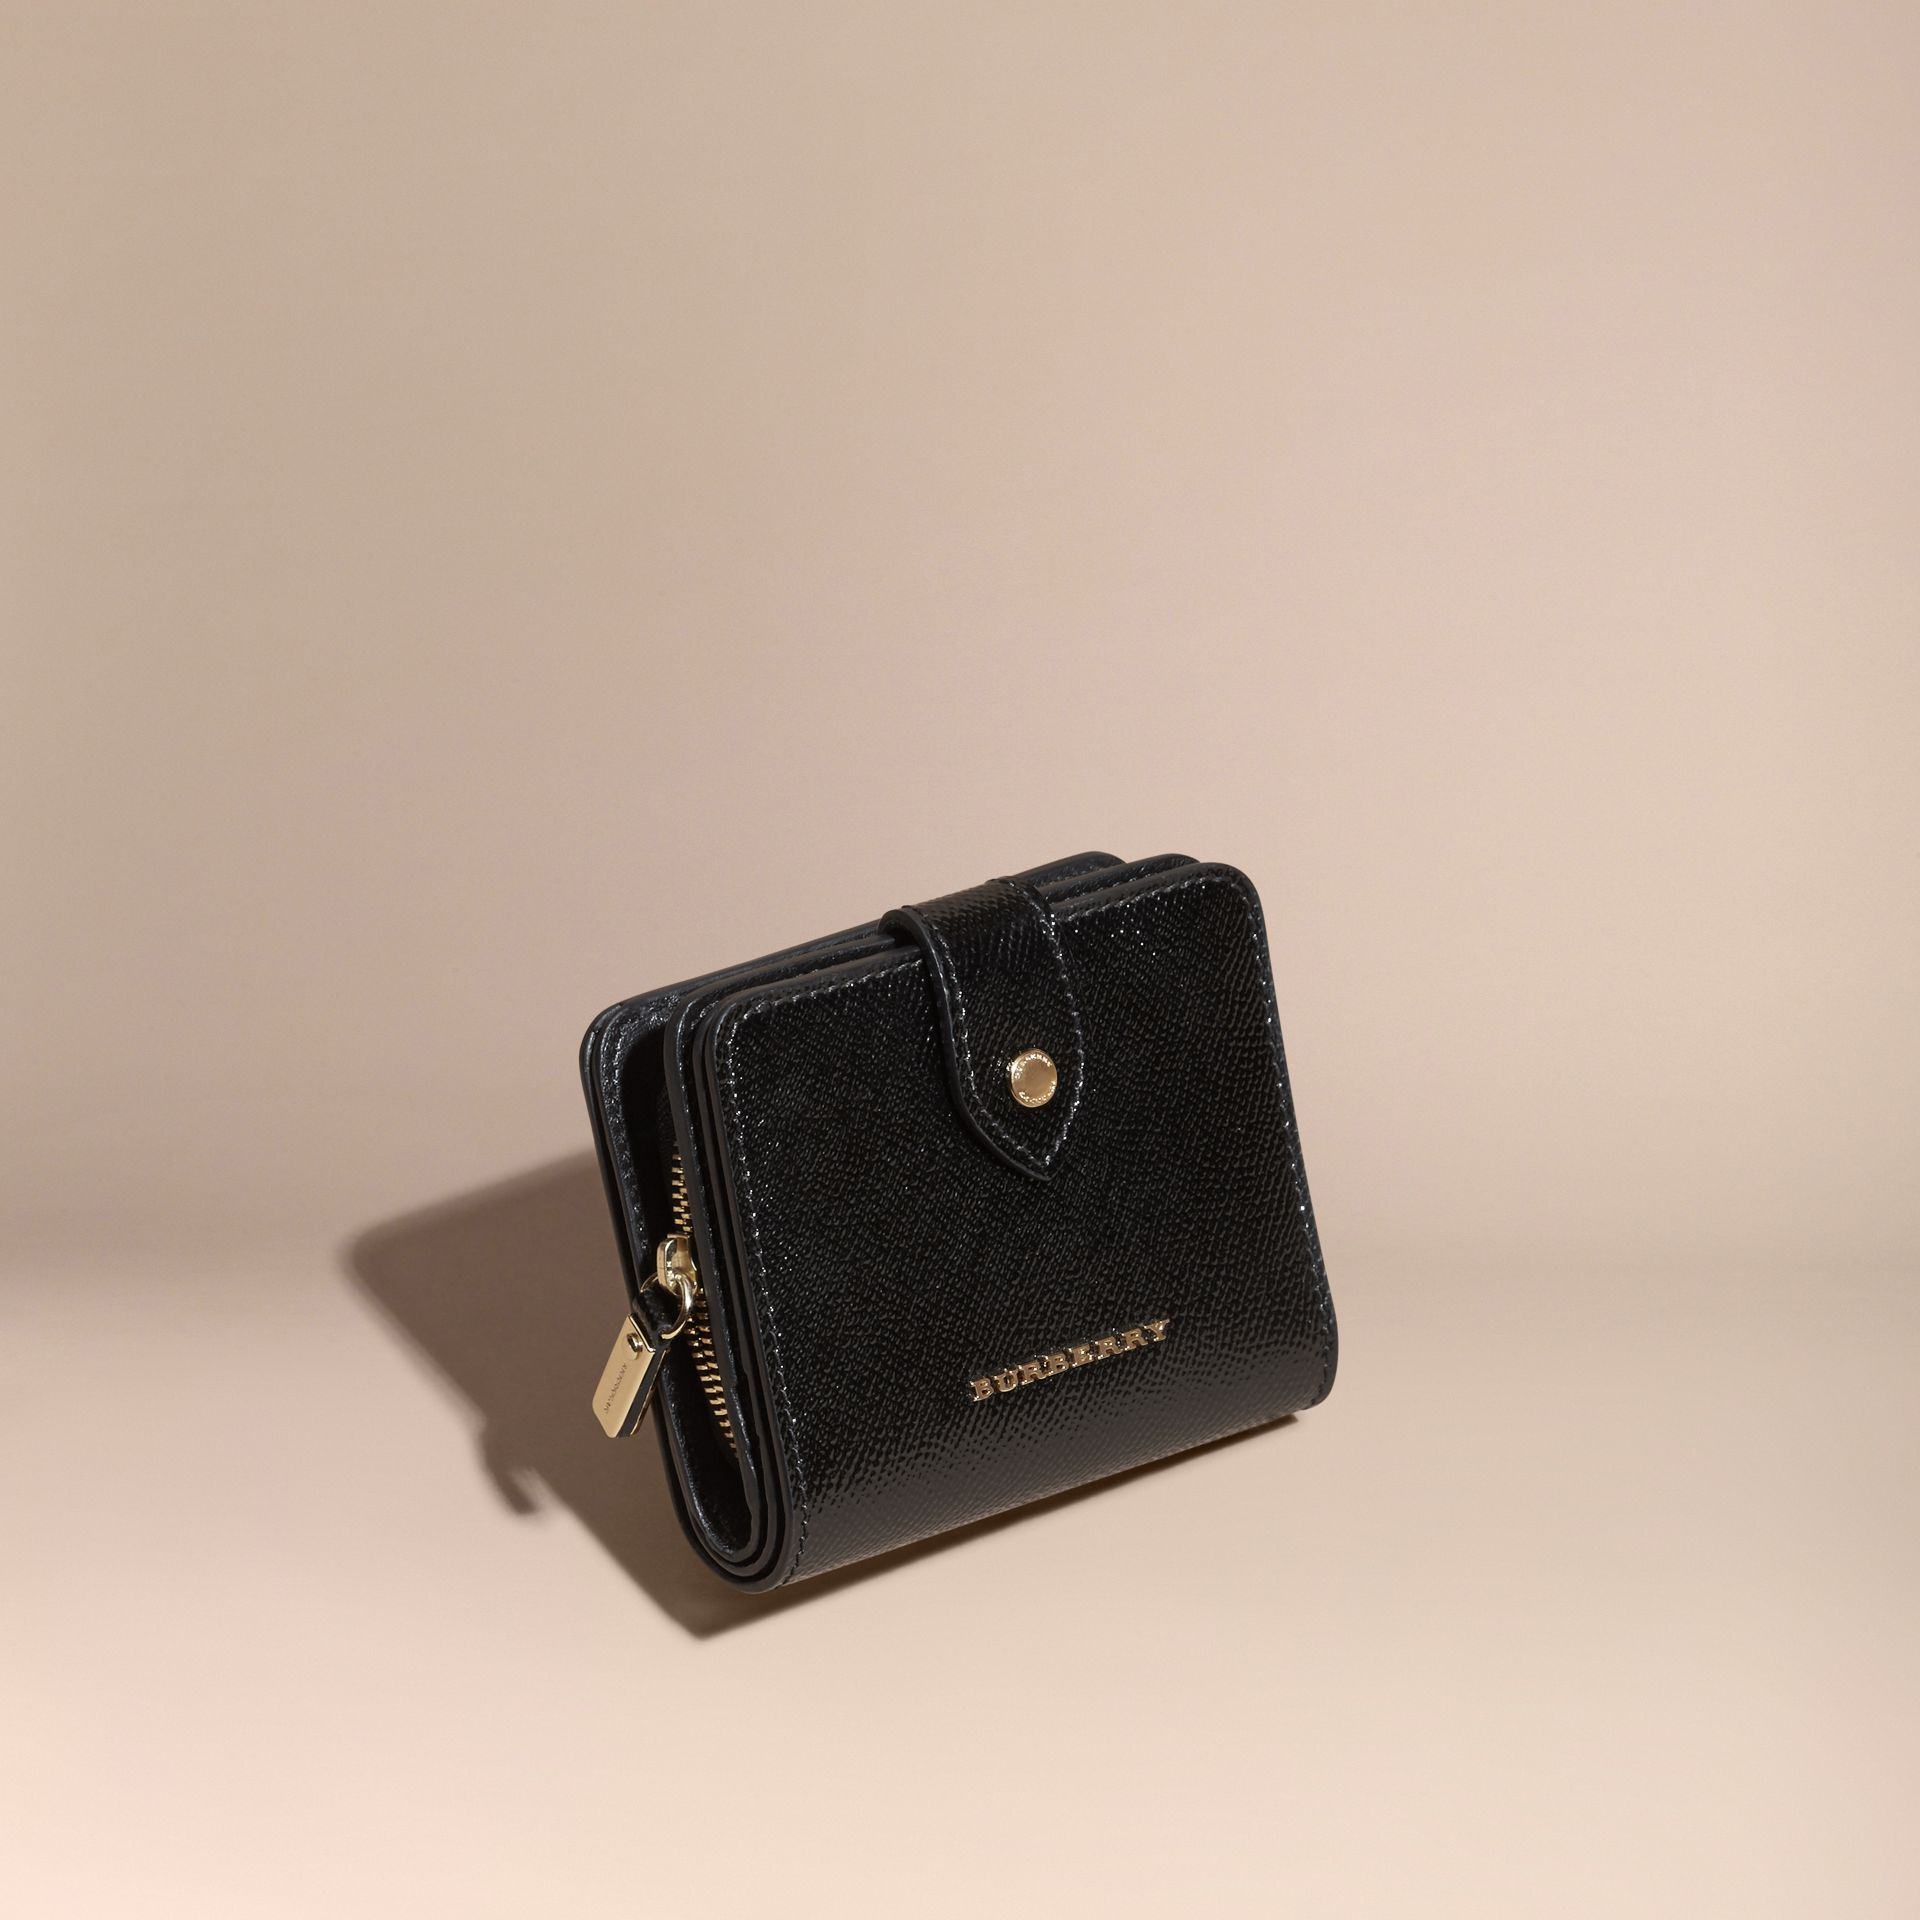 Black Patent London Leather Wallet Black - gallery image 1